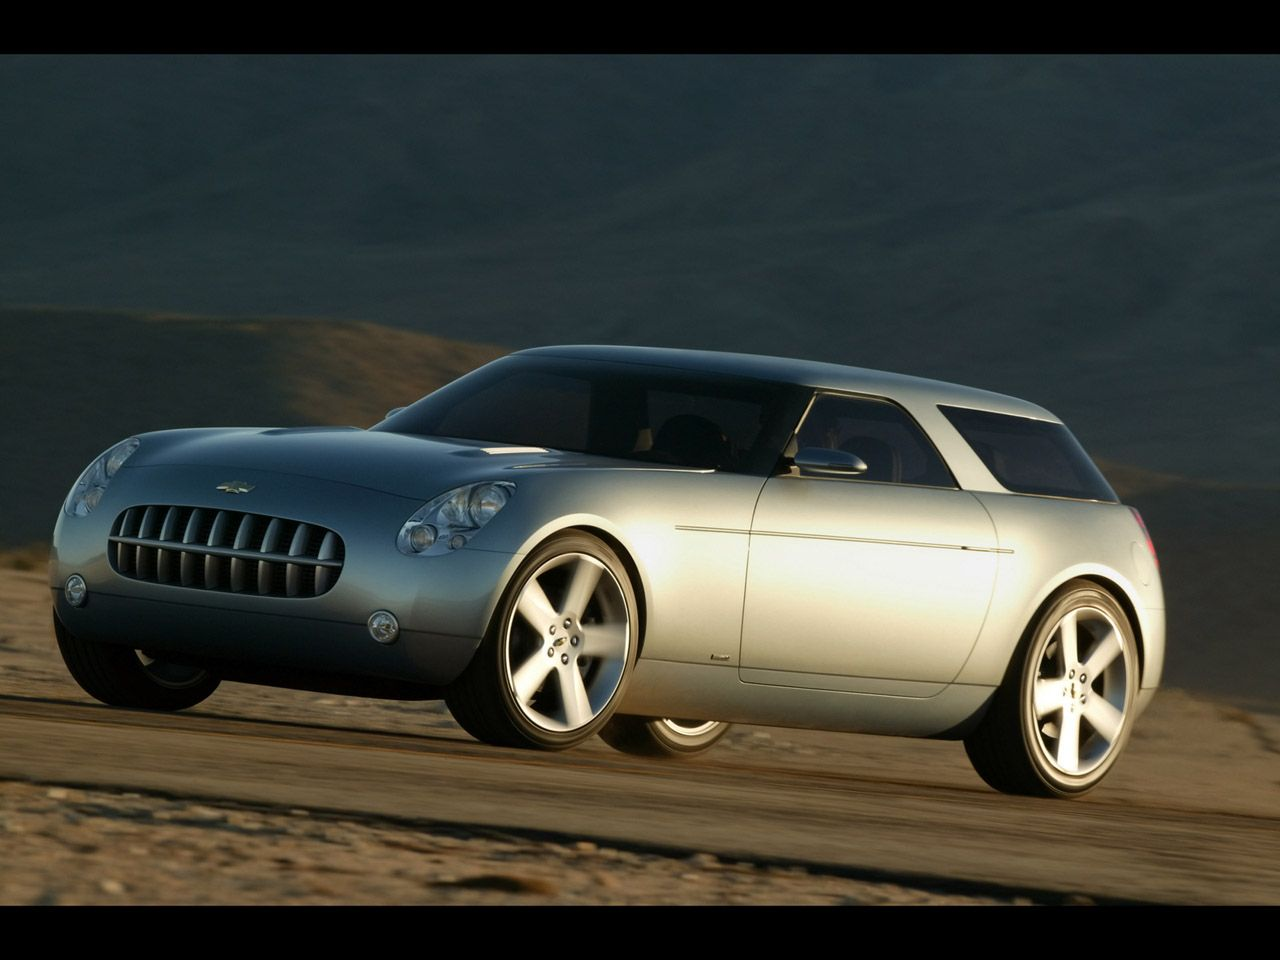 2004 Chevrolet Nomad Concept What Do You Think Should Gm Have Put This Into Production Instead Of The Pontiac Solstice Or Chevrolet Concept Cars Chevy Nomad